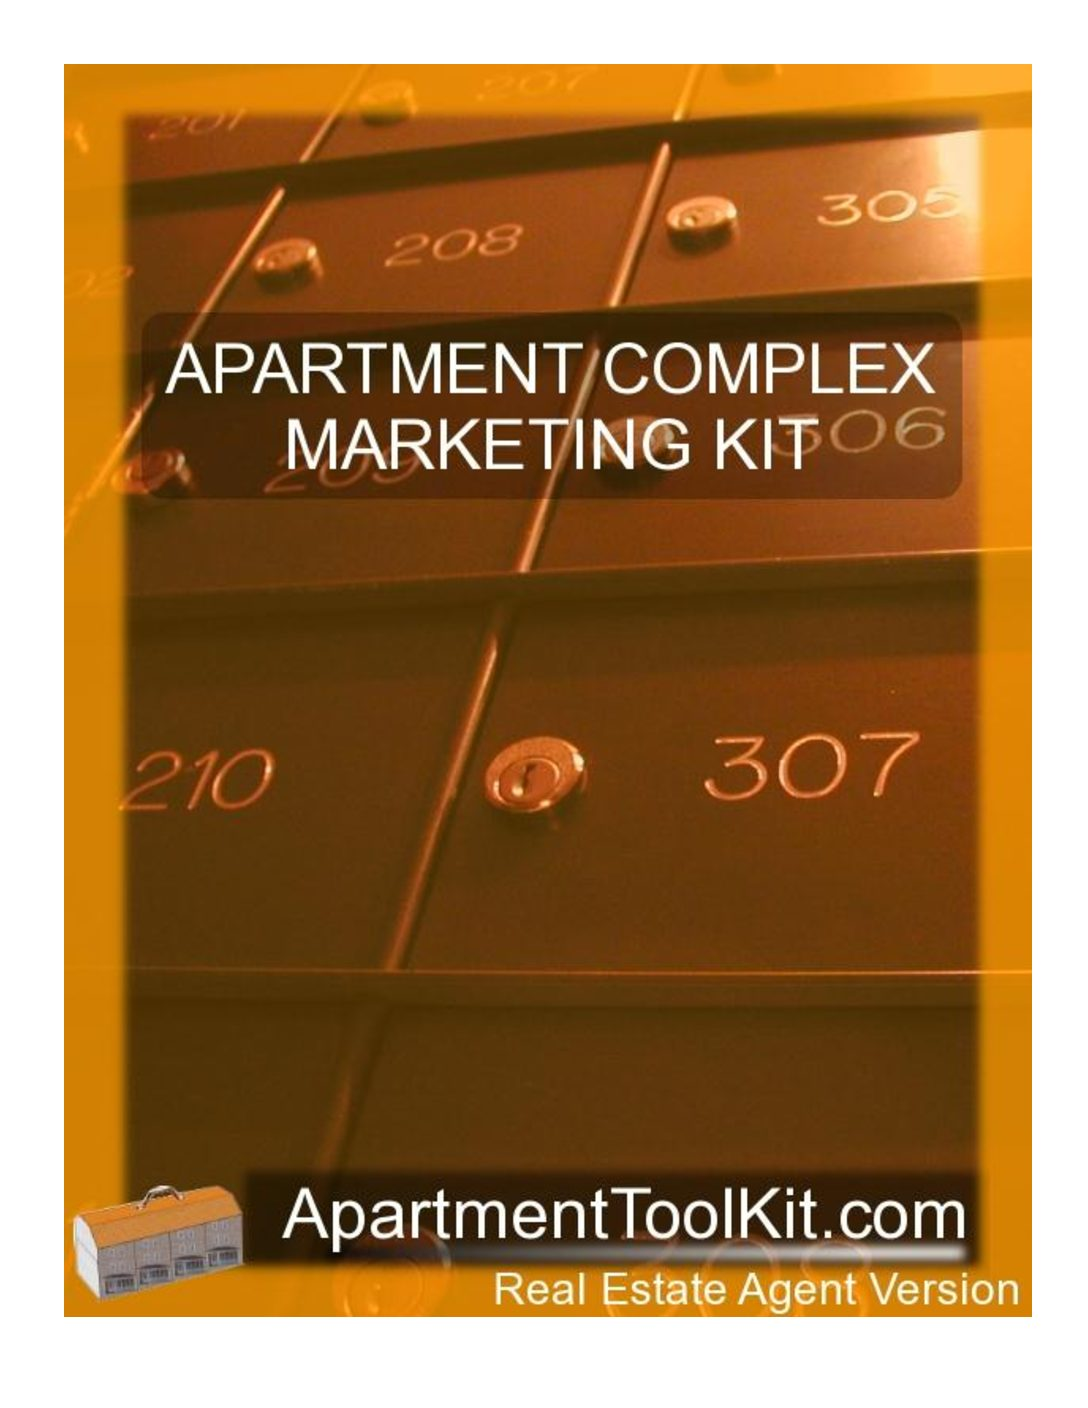 Products | Apartment Toolkit